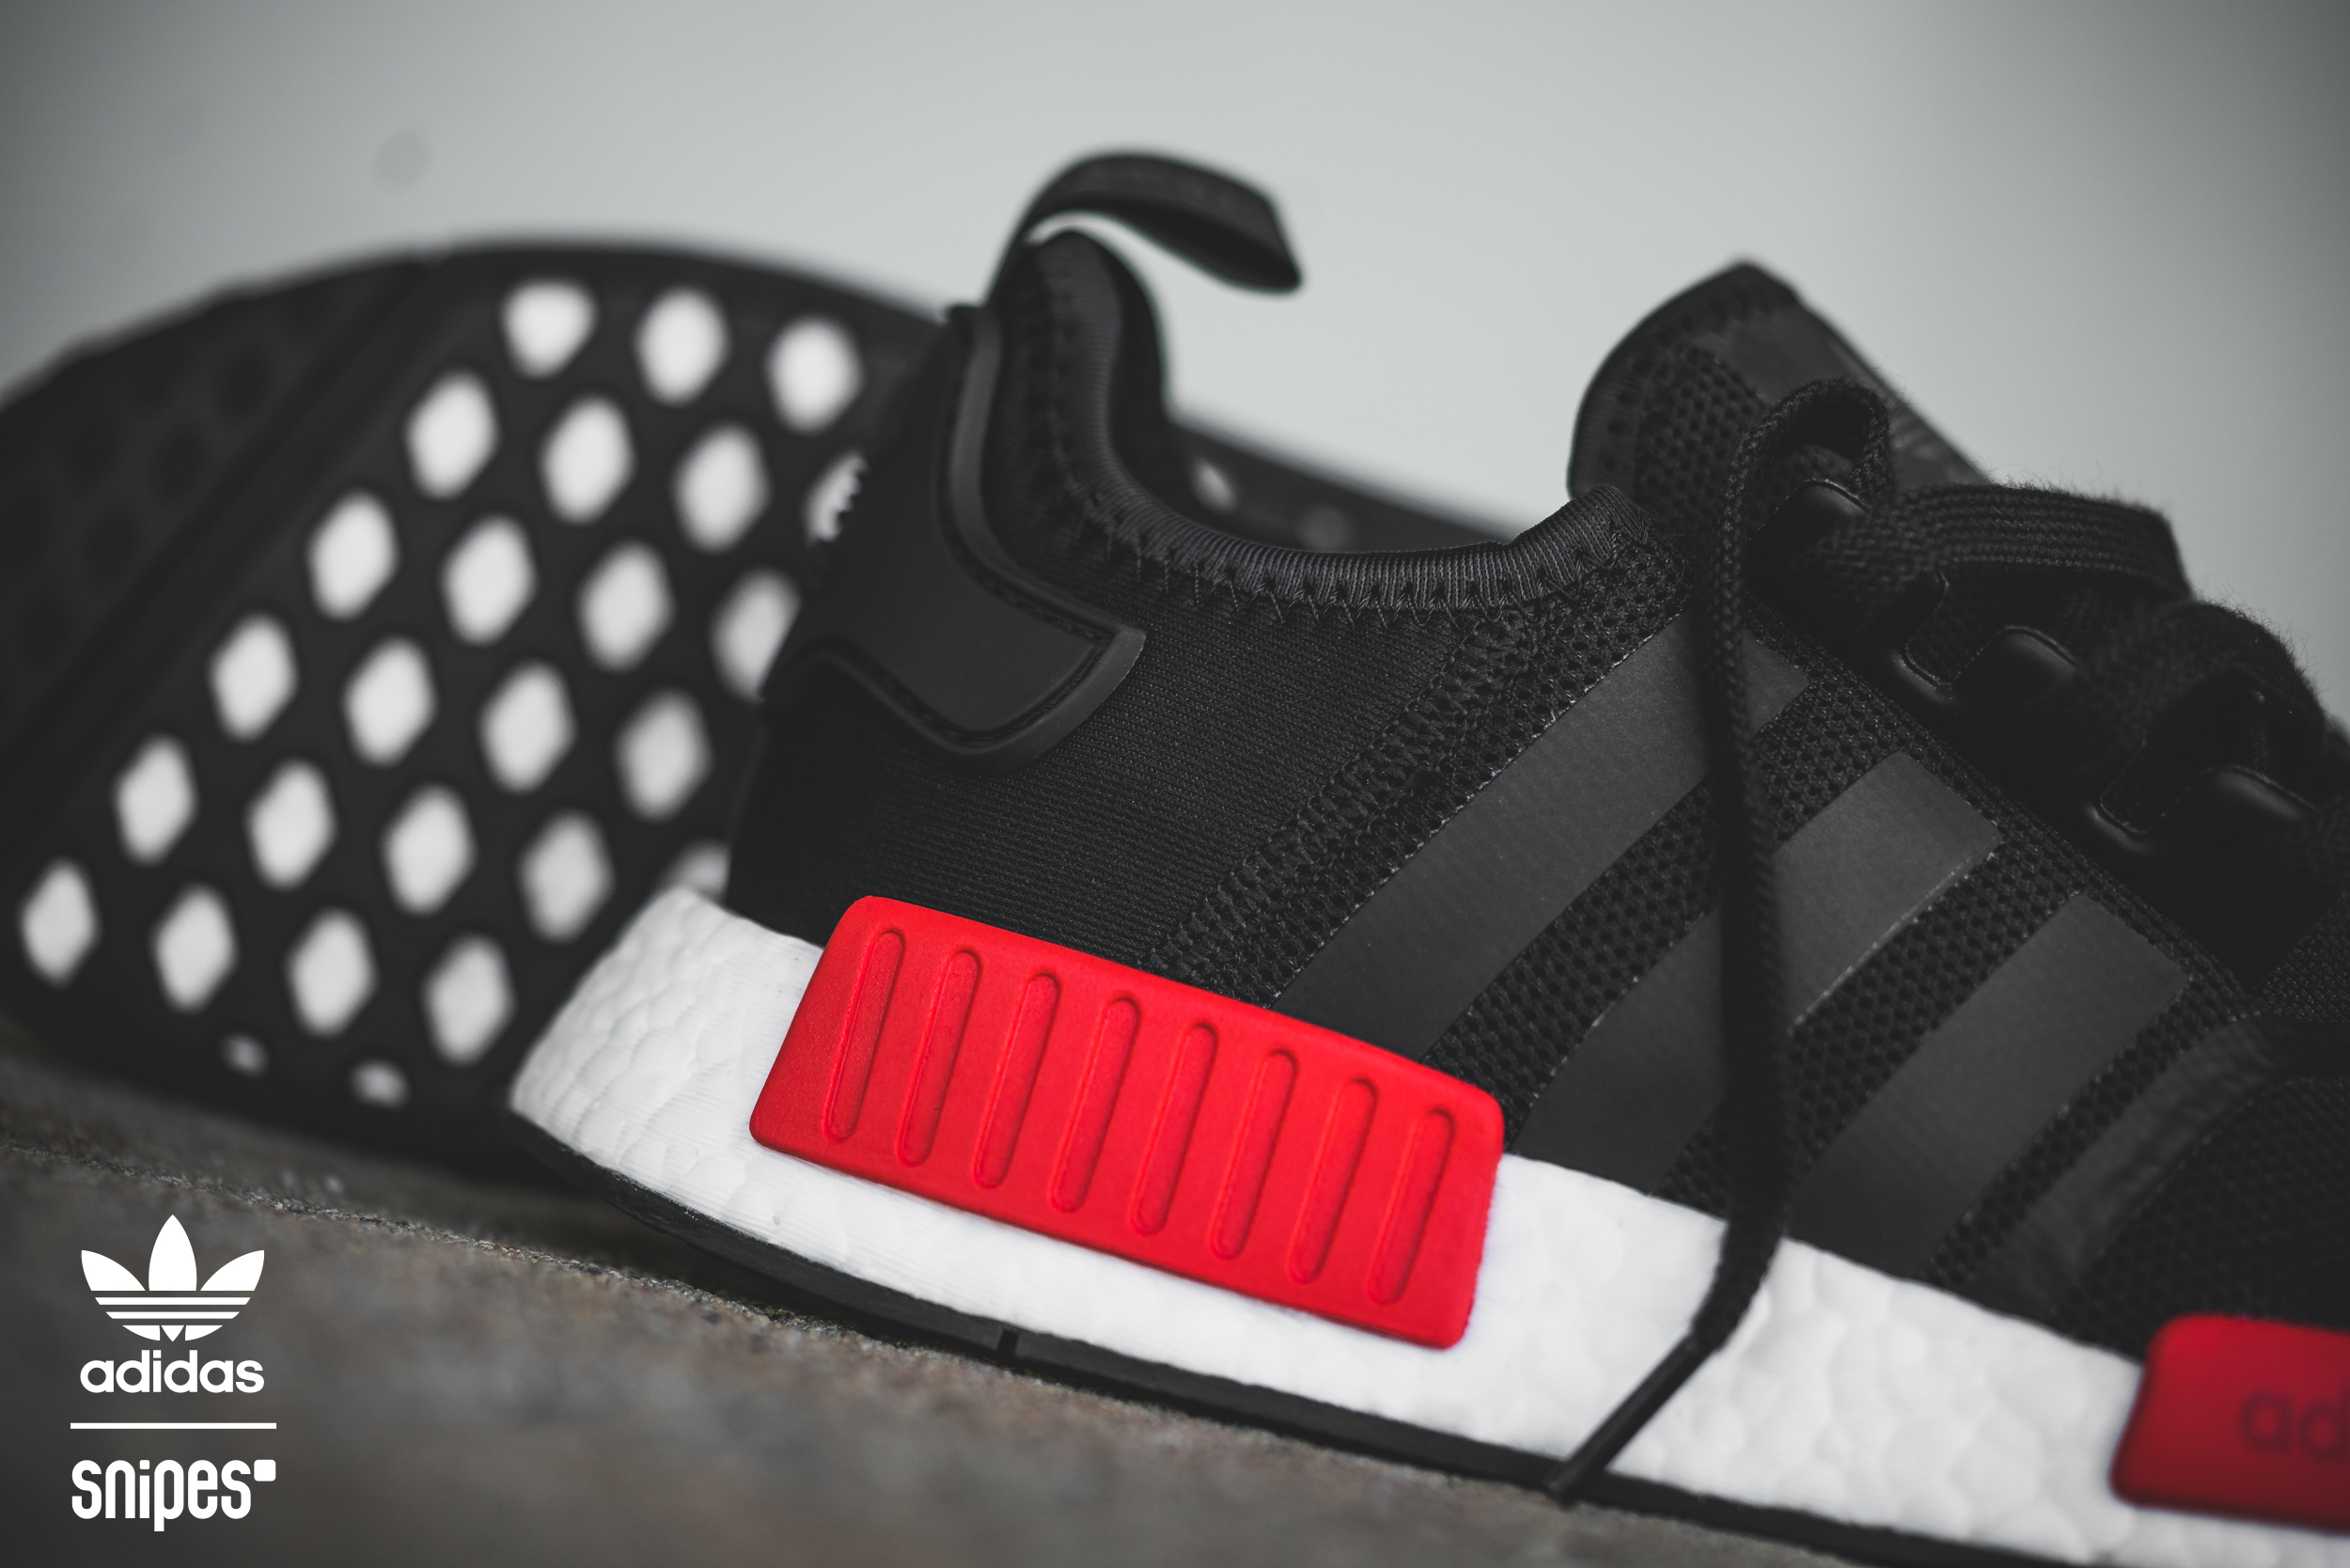 best sneakers aa6b3 d1efd SNIPES: Alle adidas NMD_1 Modelle auf einen Blick! | HYPES ...